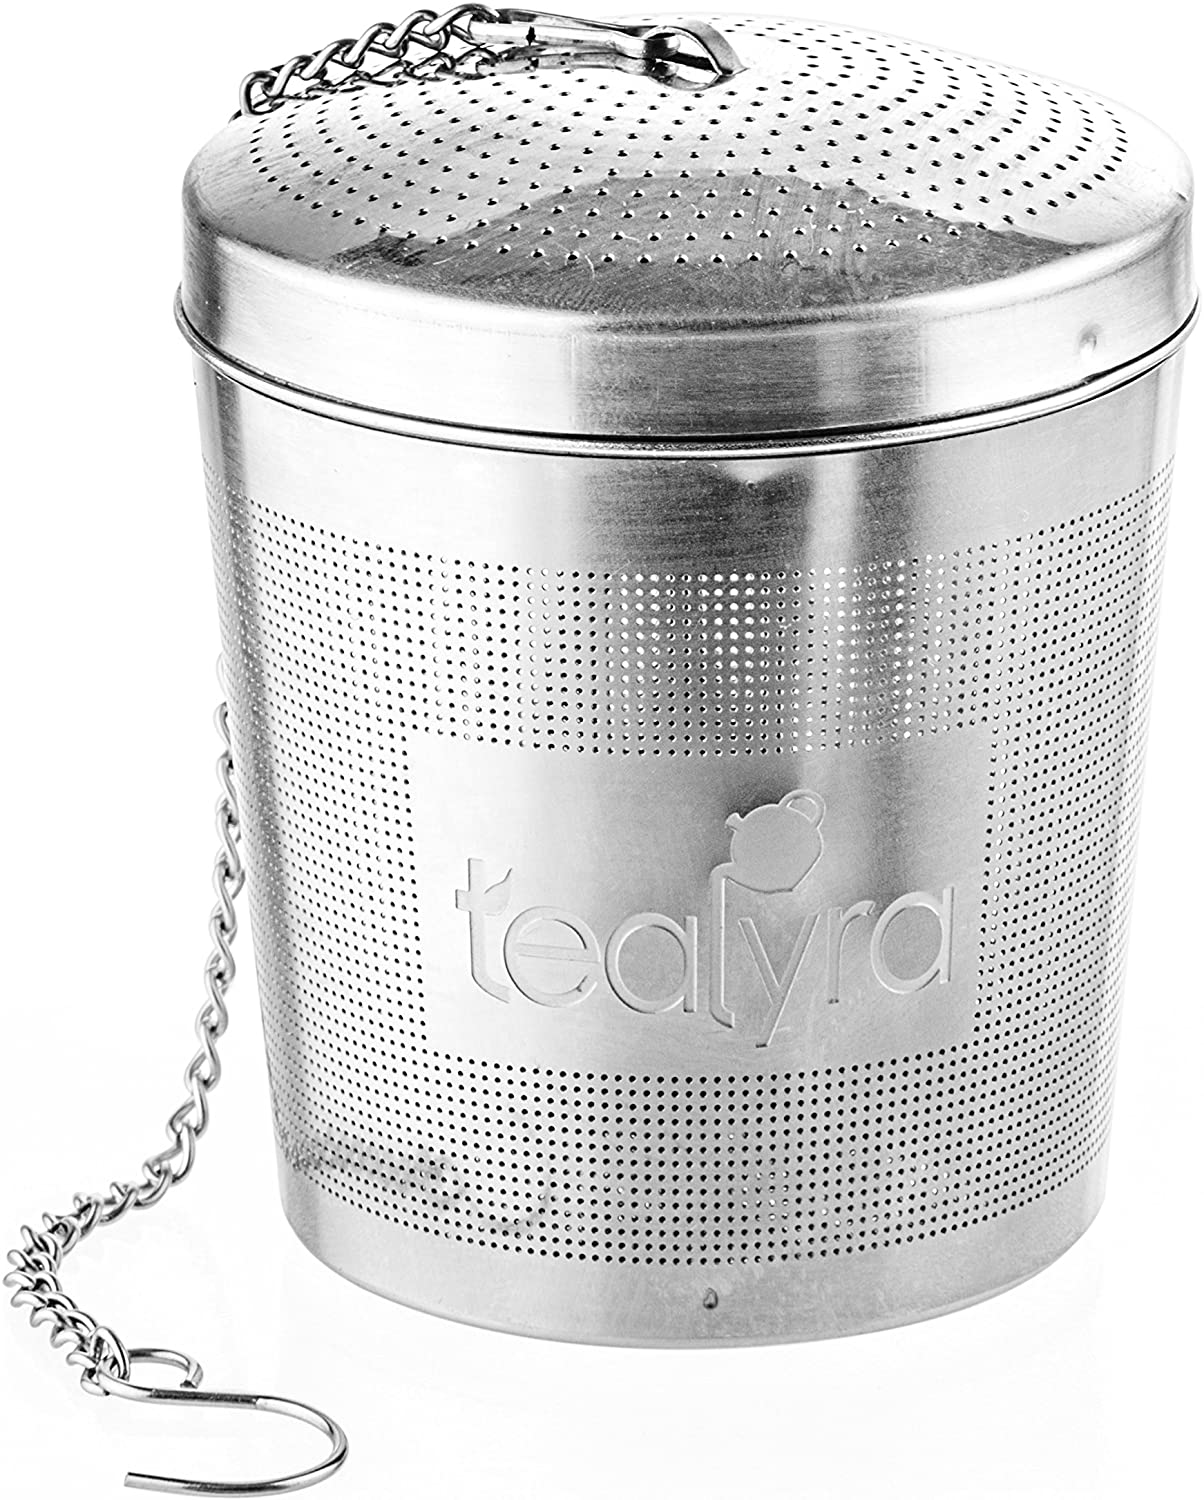 Tealyra - easyTEA - Tea Infuser Ball - Mesh Strainer - Large Capacity and Perfect Size for Hanging in Teapots - Mugs - Cups - To Steep Loose Leaf Tea and Herbs